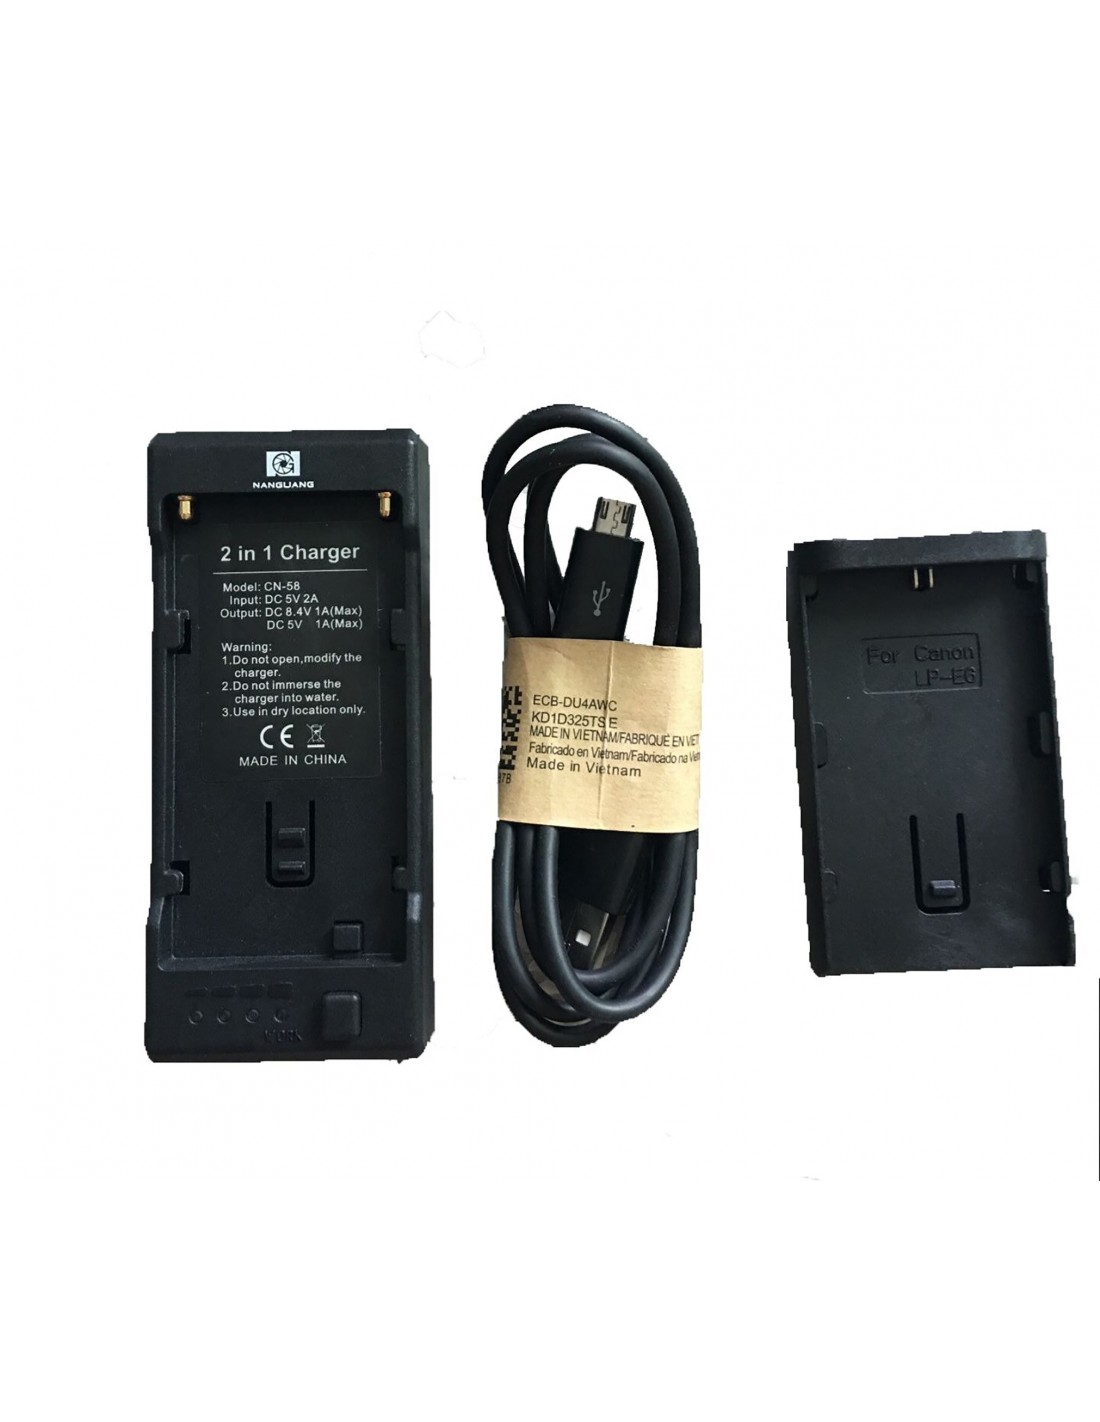 NanGuang CN-58 2-in-1 Battery Charger